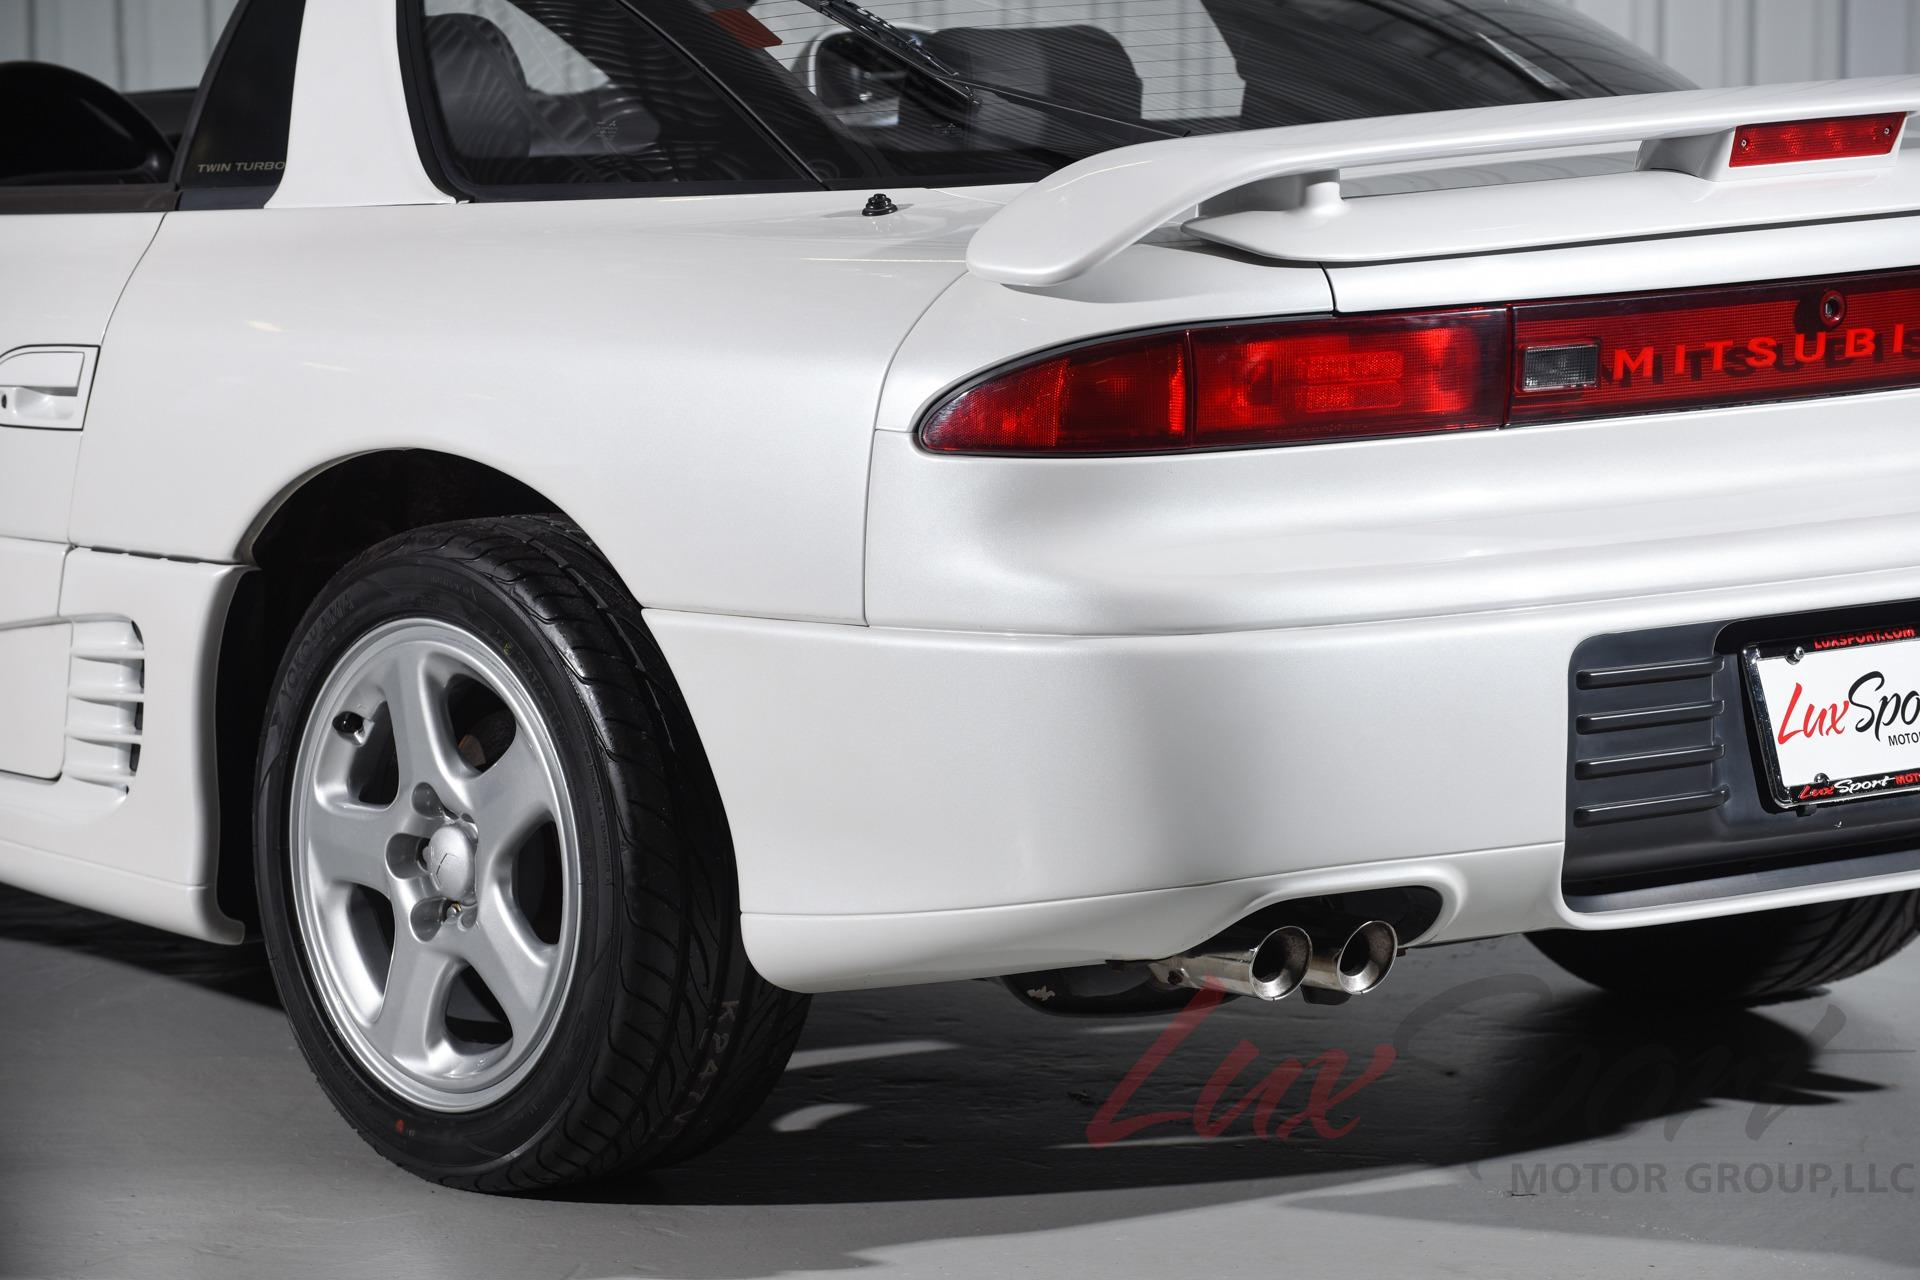 Used 1991 Mitsubishi 3000GT VR4 Twin Turbo Coupe VR-4 Turbo | New Hyde Park, NY